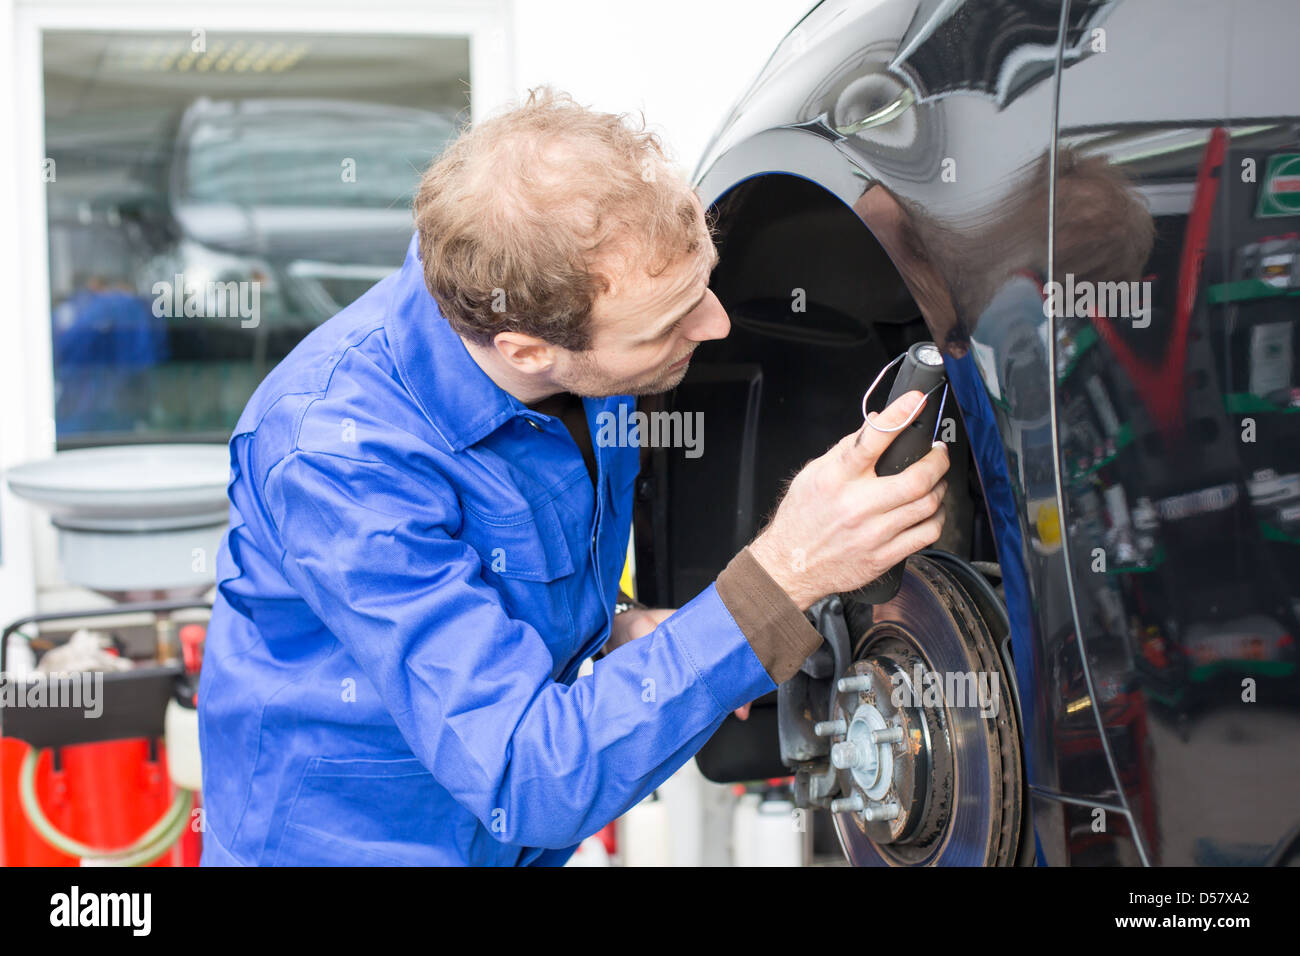 Car mechanic repairs the brakes of an automobile on a hydraulic lift Stock Photo